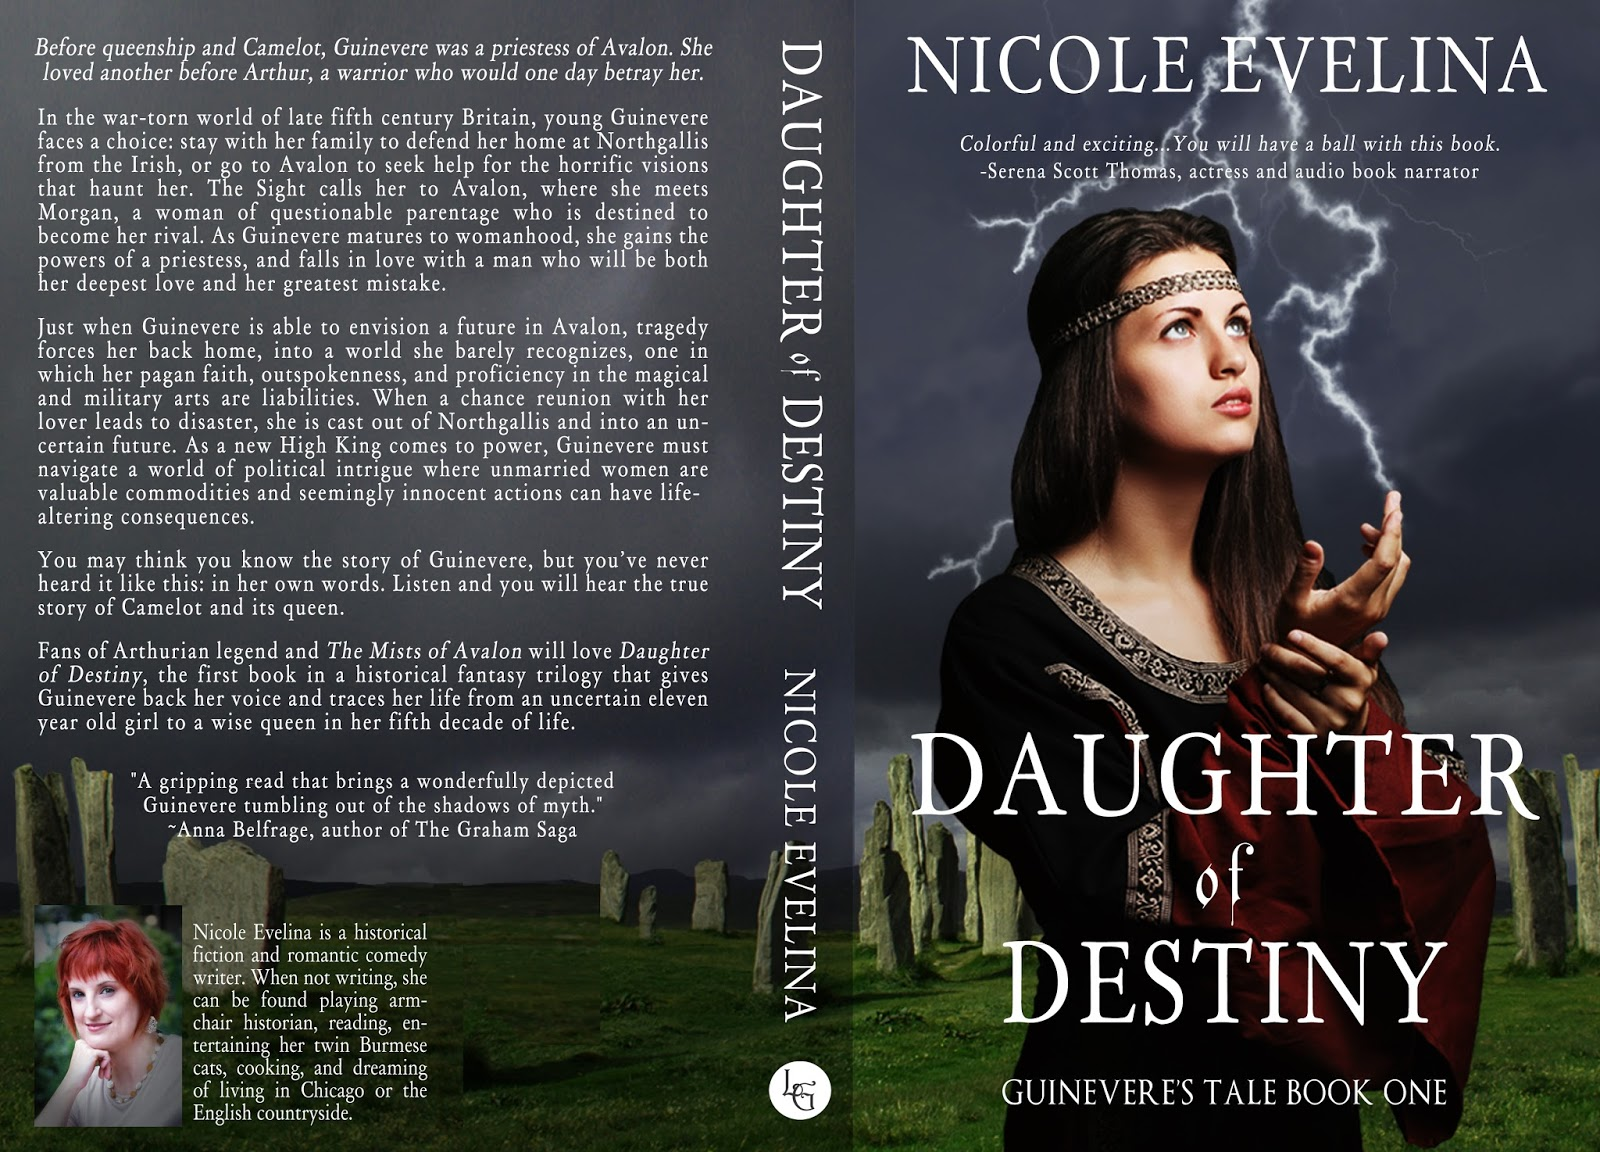 Daughter of Destiny (Guinevere's Tale)